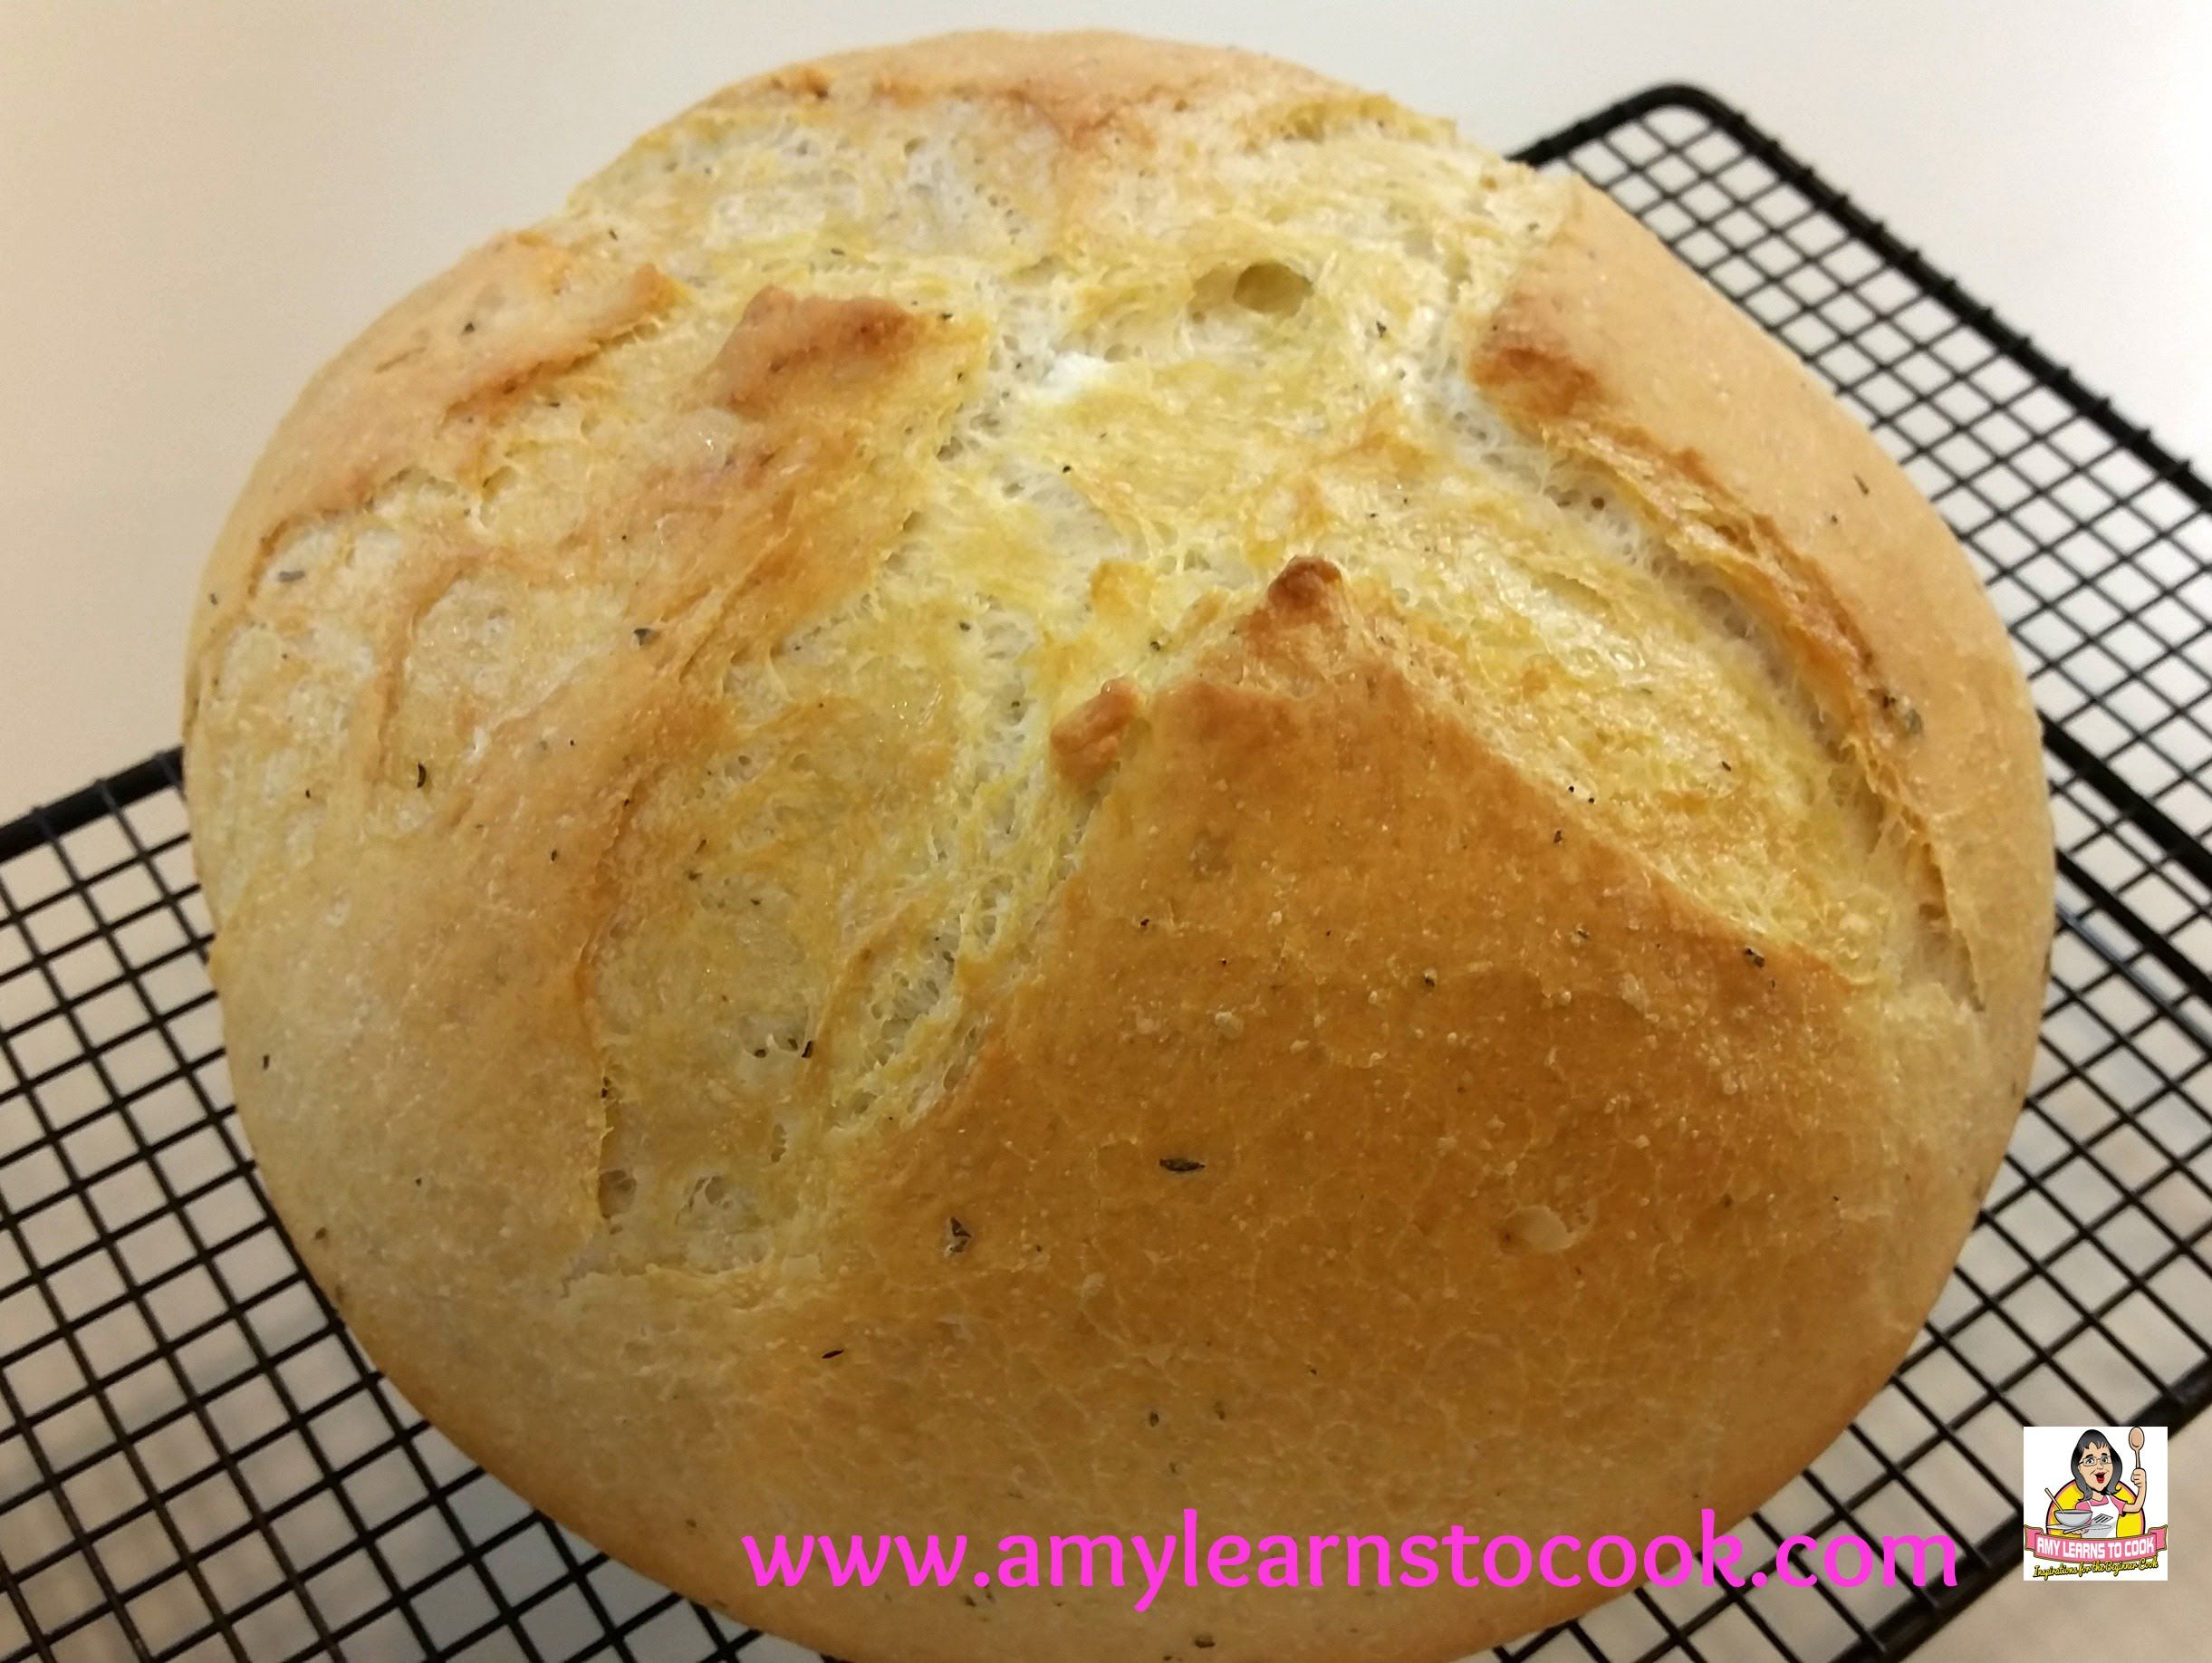 Garlic Herb Dutch Oven Bread Please Share And Subscribe To Amy